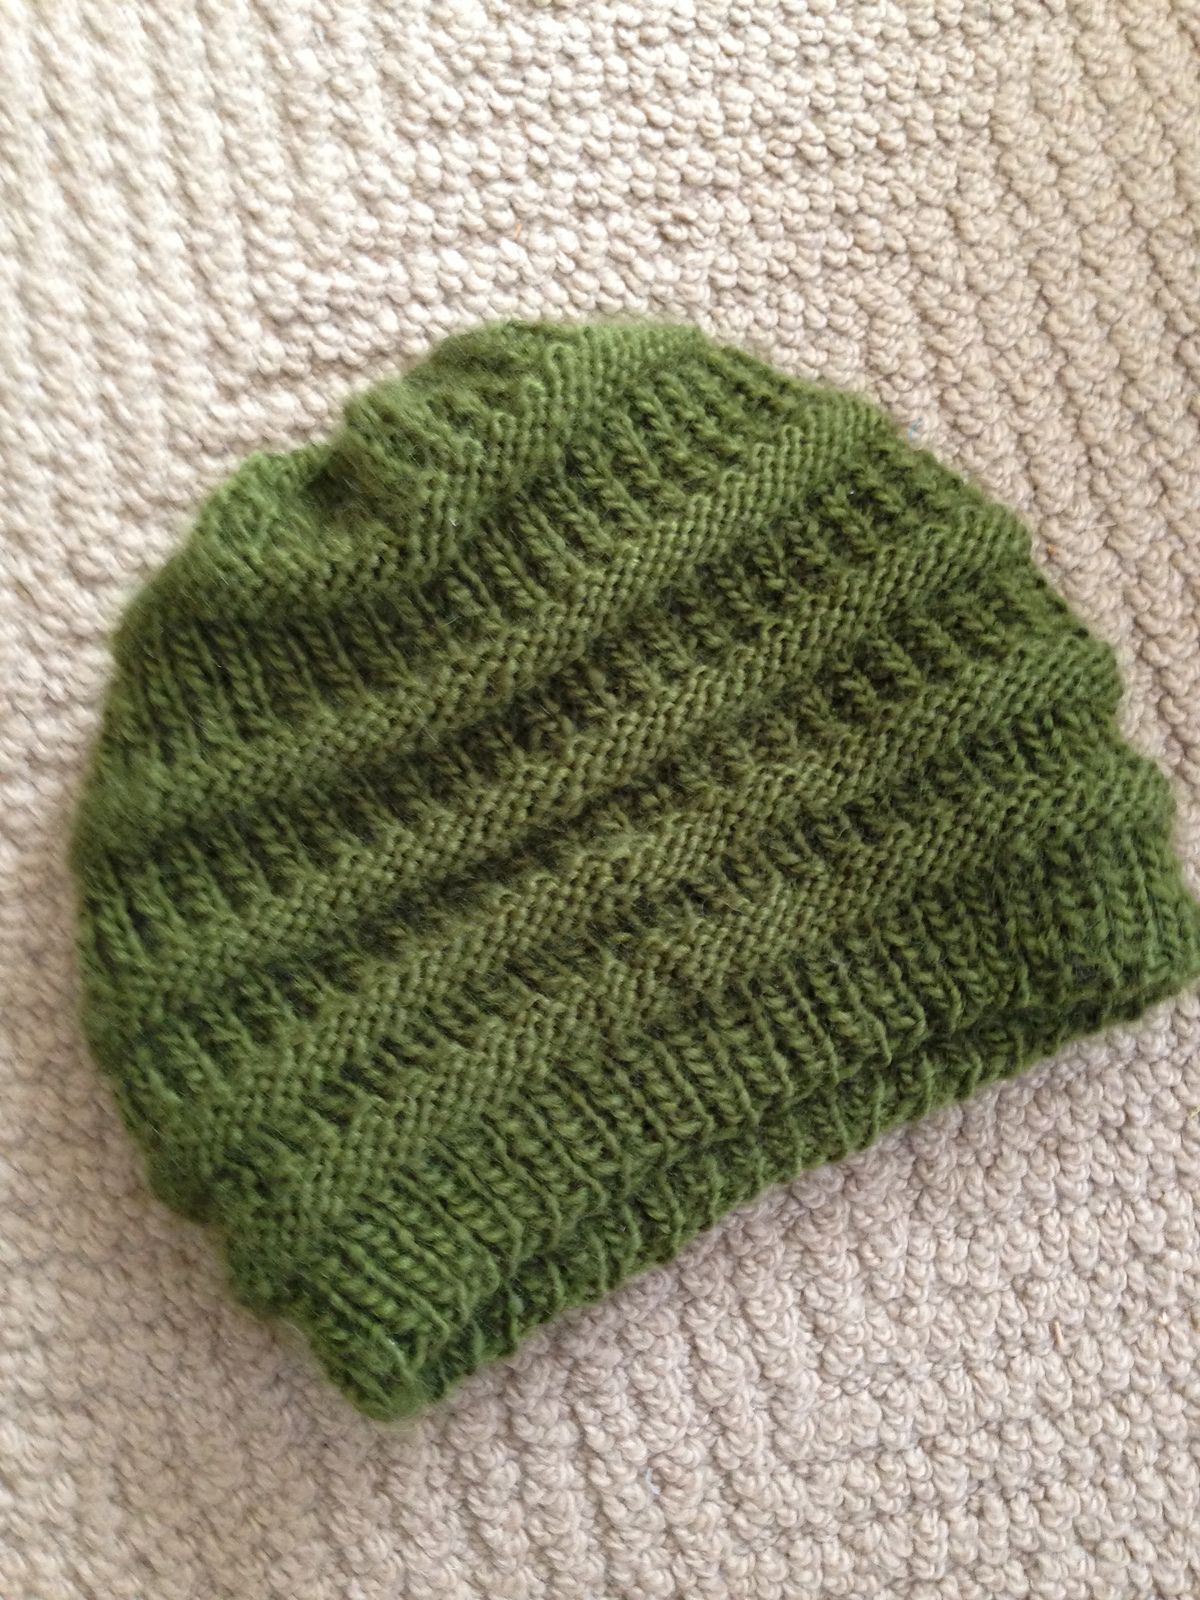 Ravelry: Easy Knit Slouchy Beanie by Siobhan McRee | Knitting ...